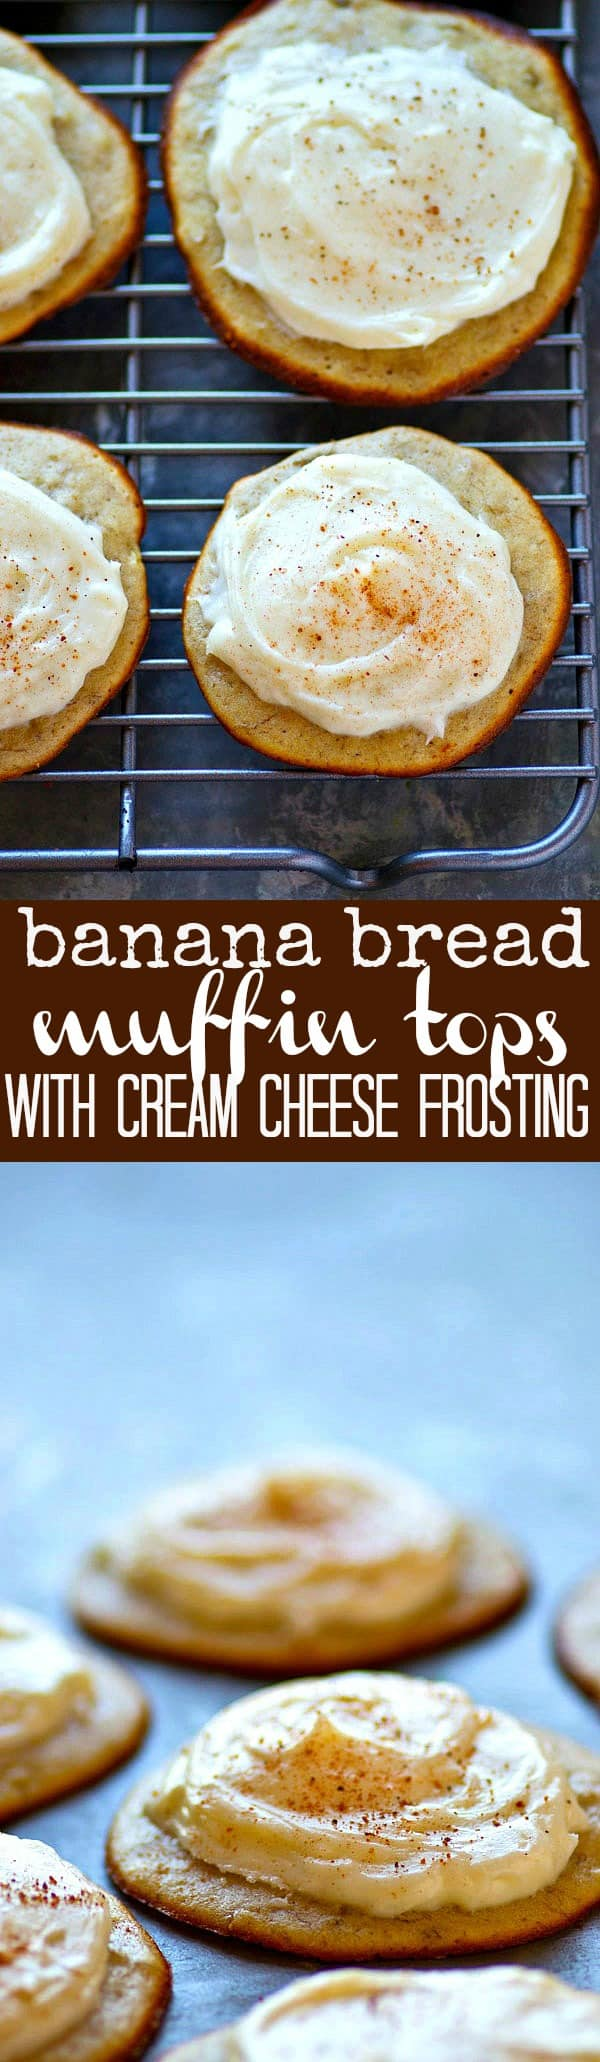 If you're a fan of the muffin tops, these ultra-moist banana bread muffin tops are an absolute breakfast must! Slather them with a tangy cream cheese frosting for the BEST breakfast combo.